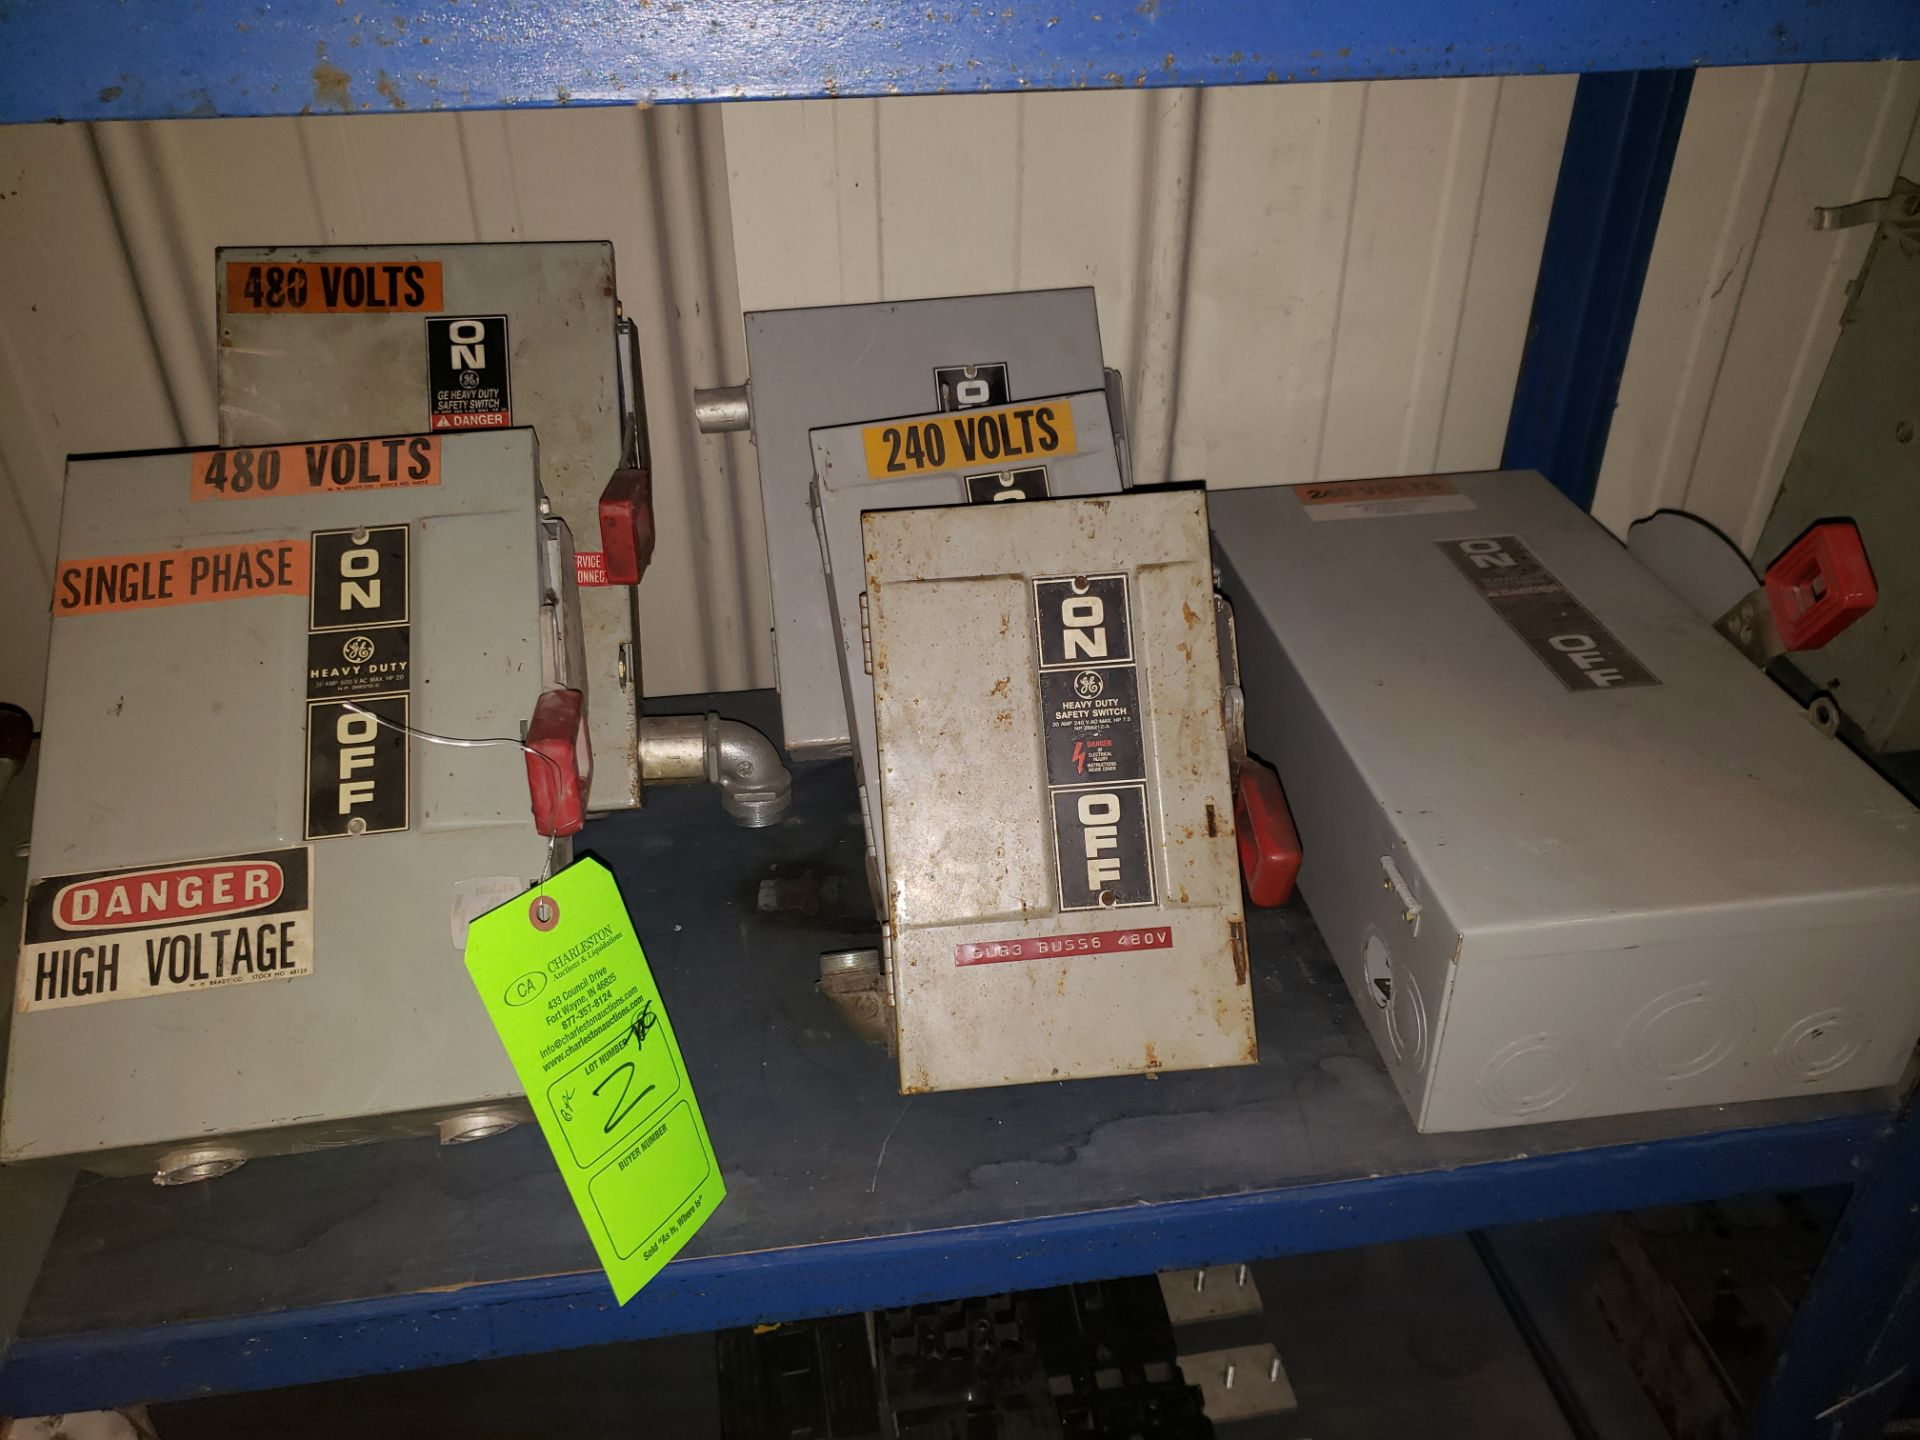 Lot 2 - (2) GE HEAVY DUTY SAFETY SWITCHES 30AMP/600V/20HP (4) GE SWITCHES 240V/30A/7.5HP